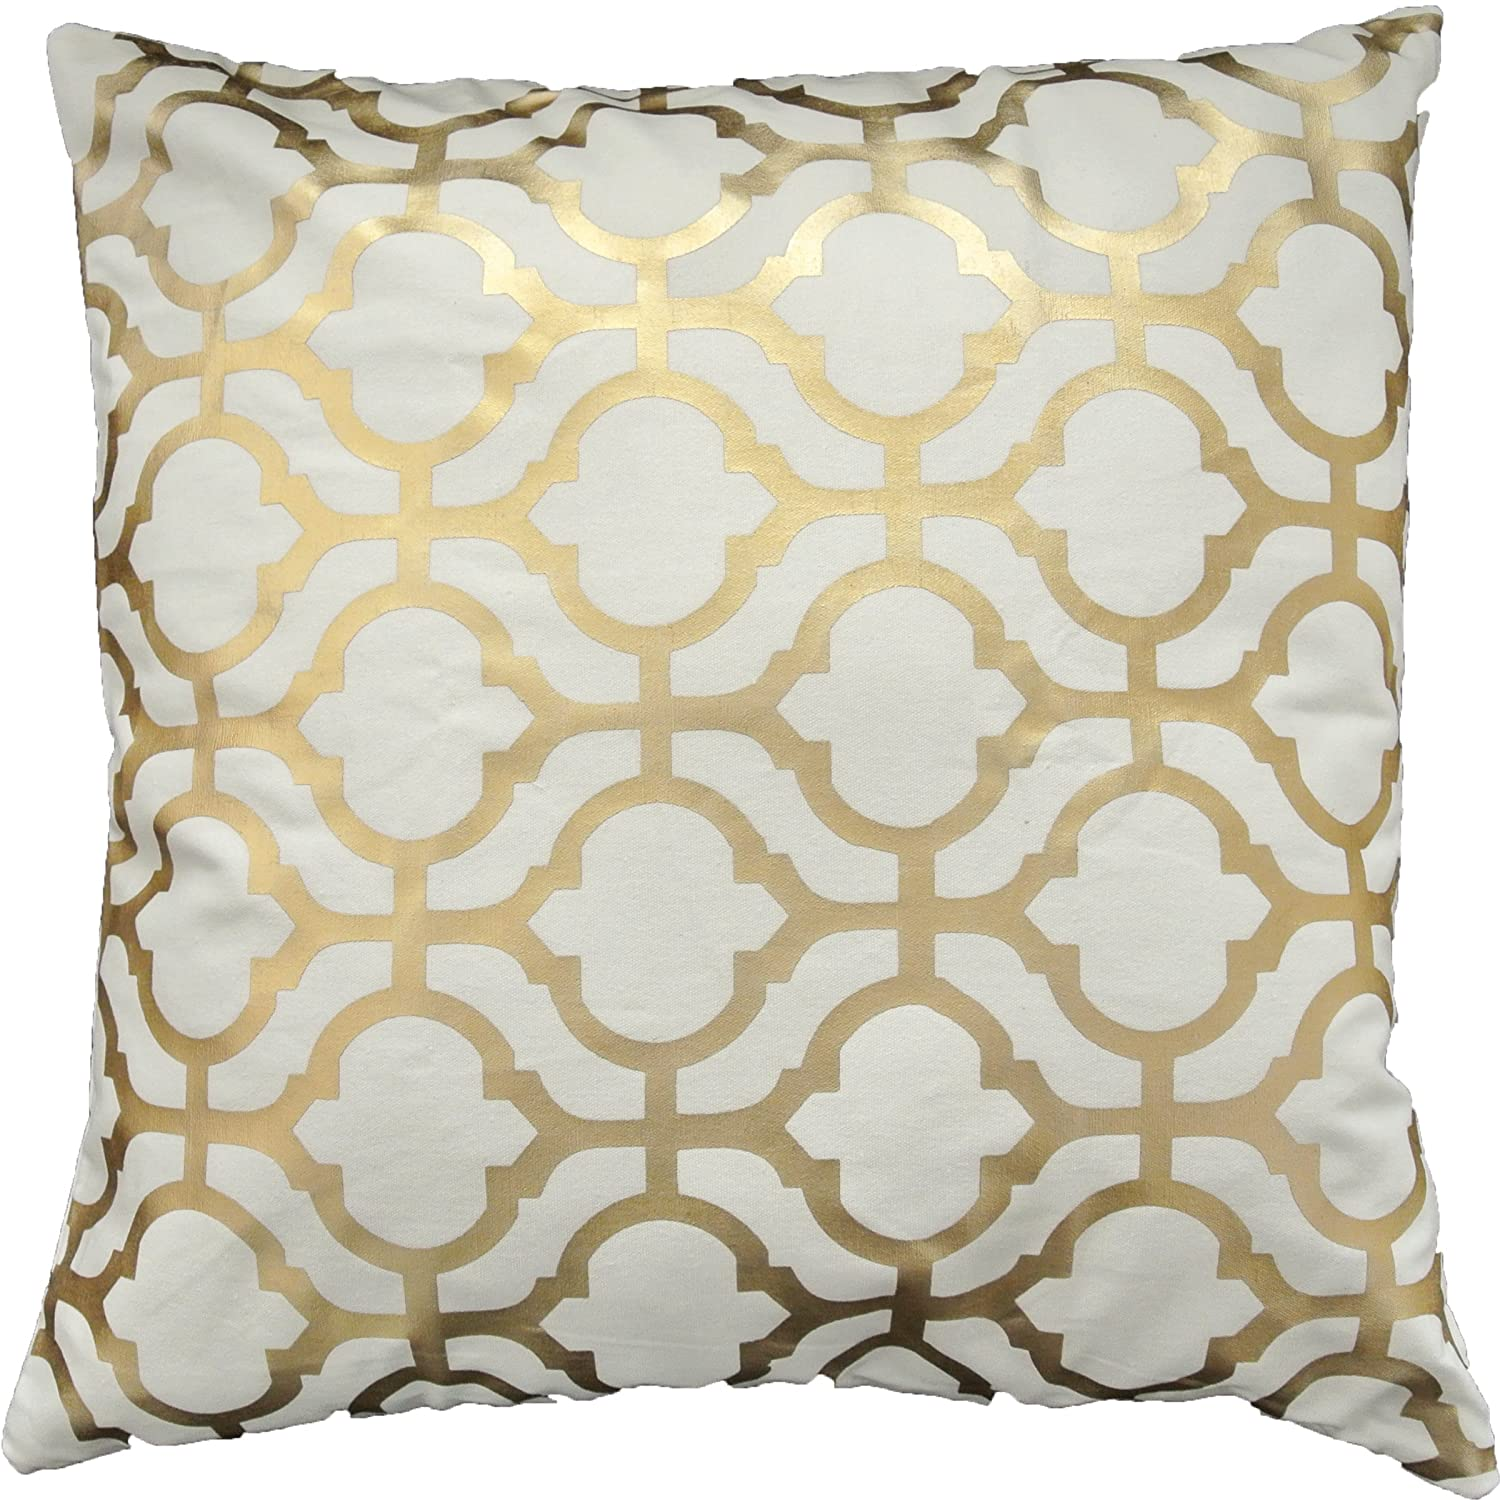 Amazon.com: Gold Foil Geometric Print Decorative Throw Pillow ...